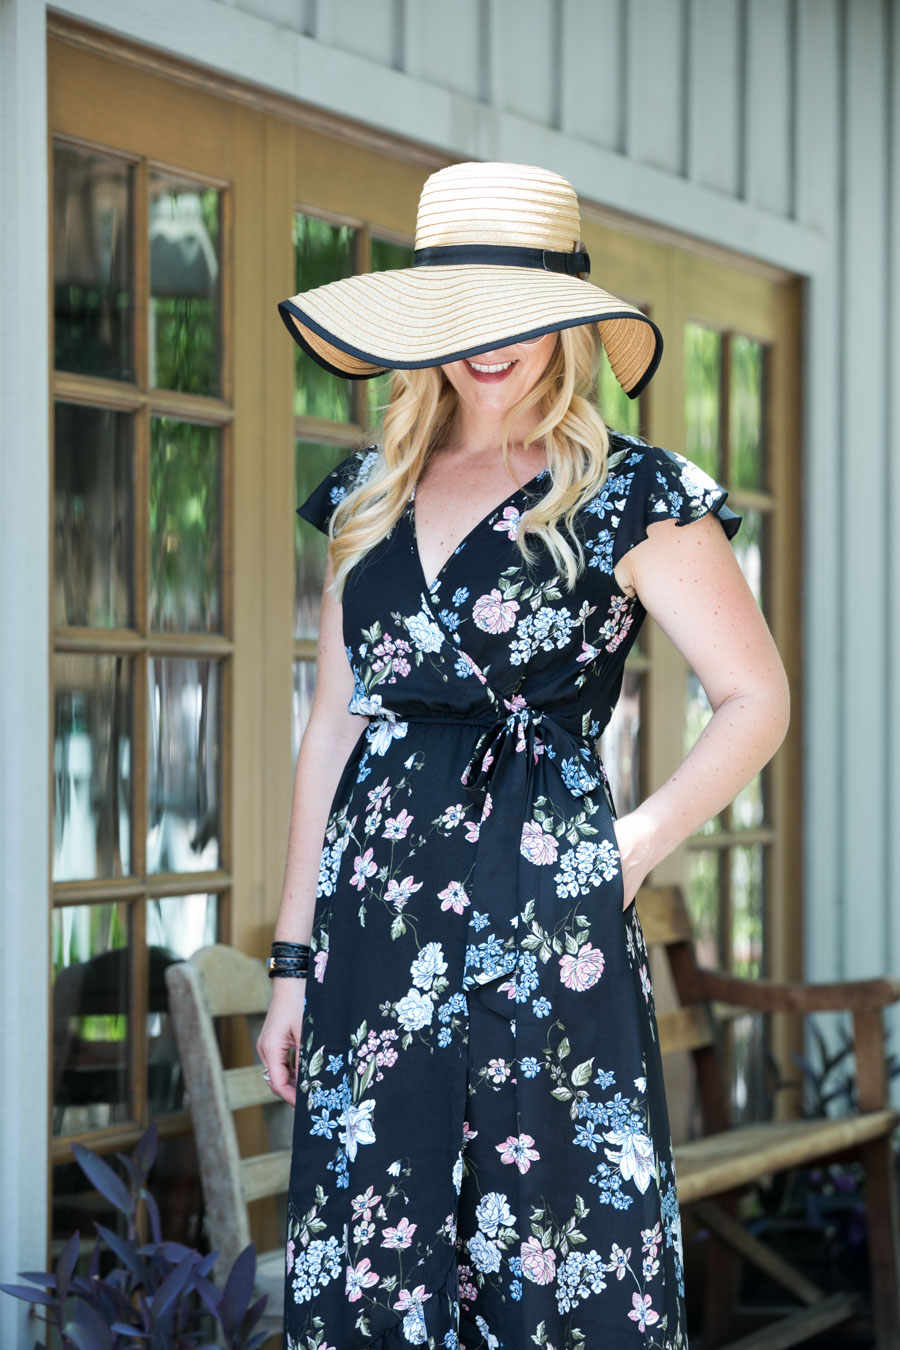 Black Floral Maxi Wrap Dress + Floppy Hat Outfit